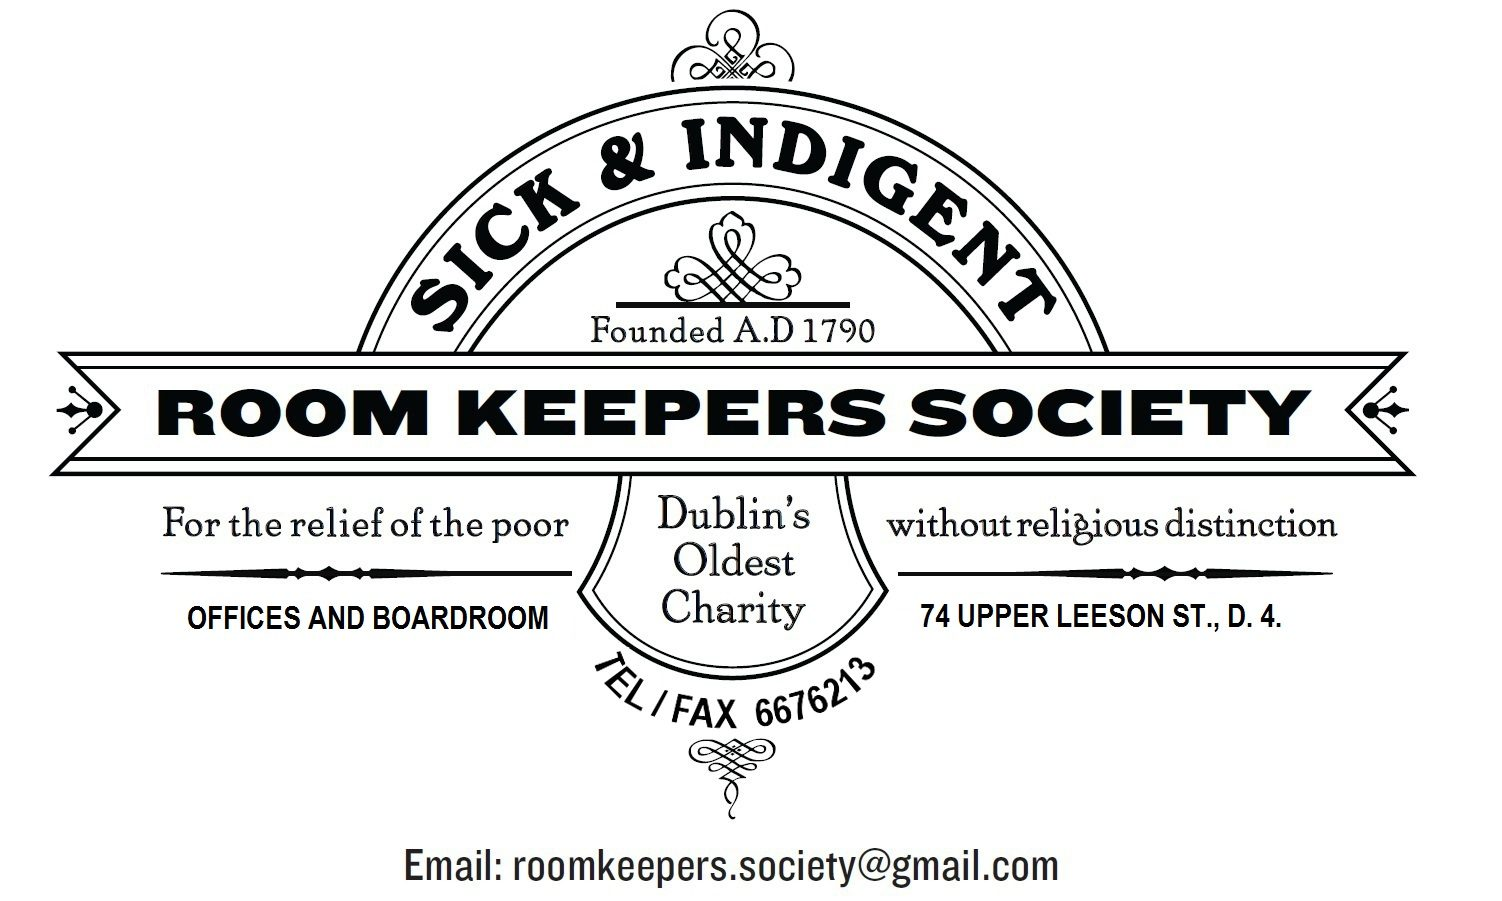 the sick and indigent society dublin s oldest charity logo